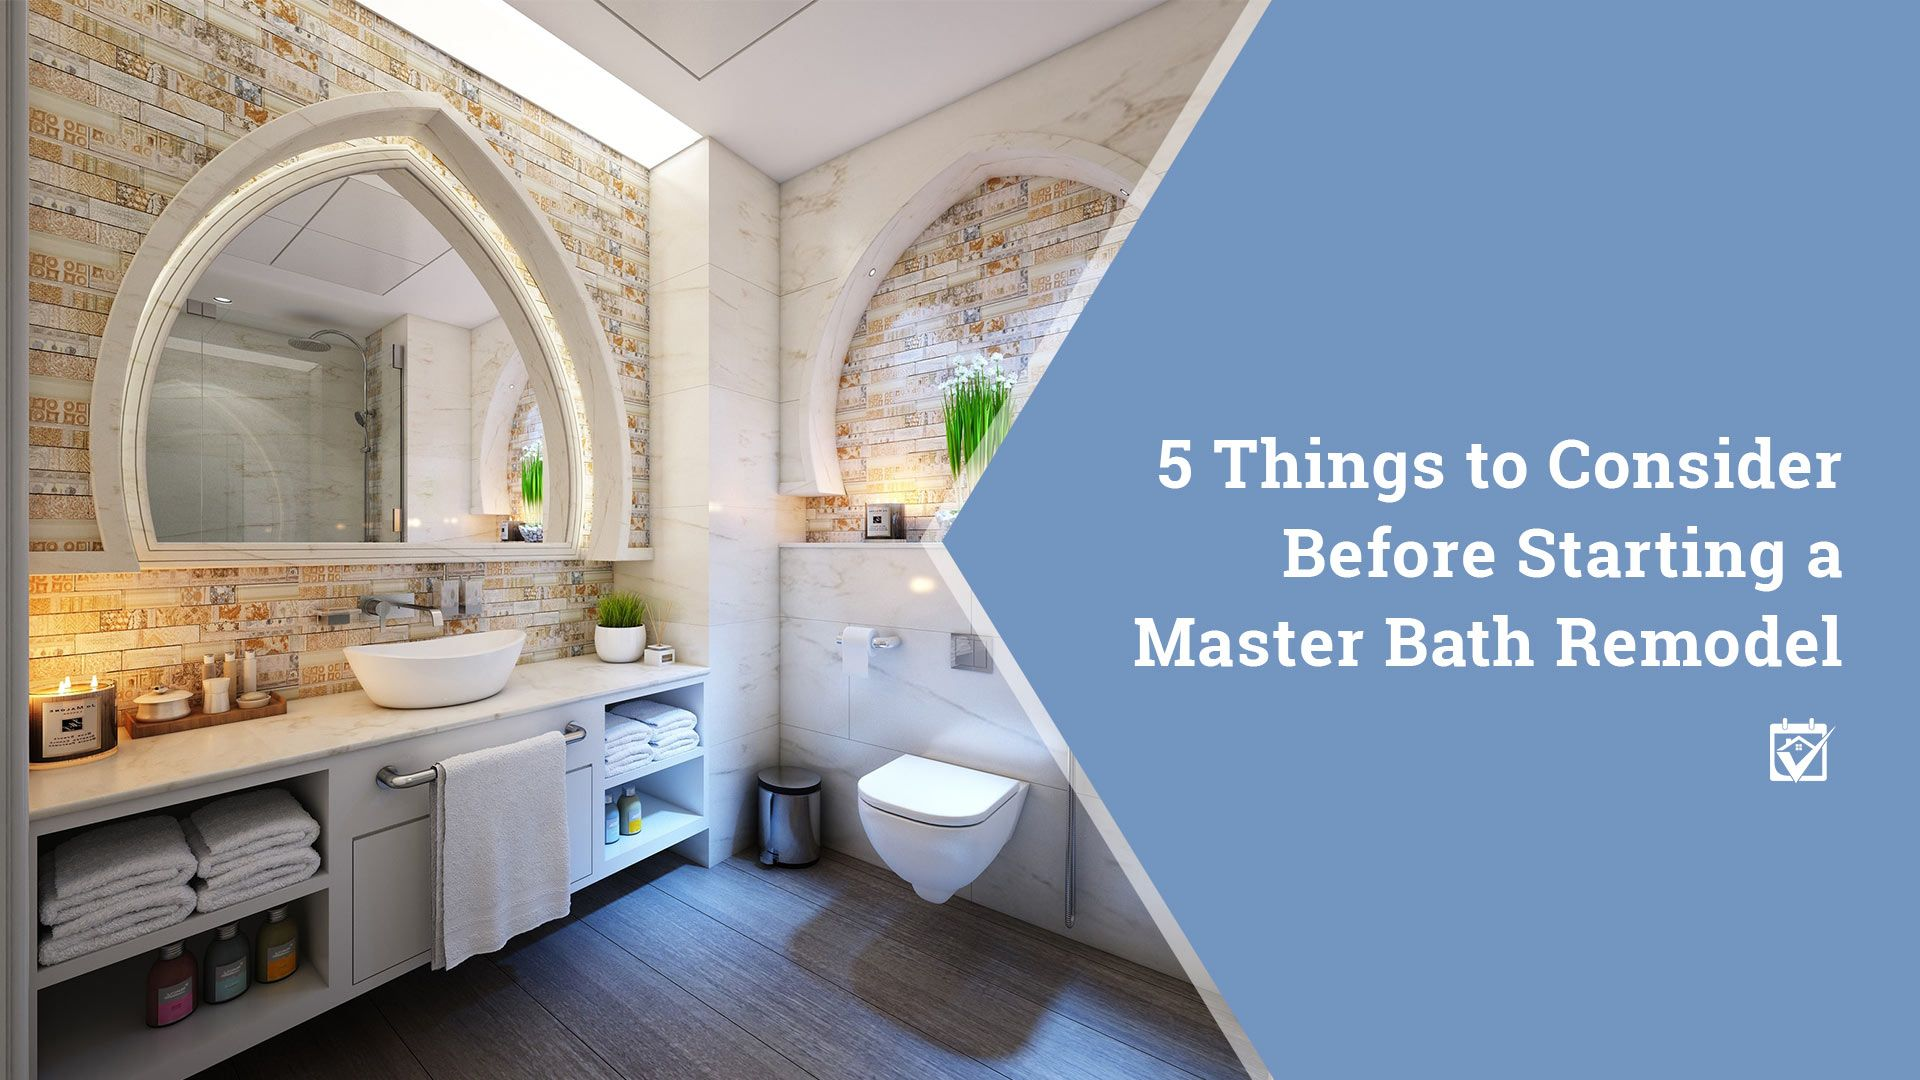 Master Bathrooms Can Add So Much Value To A Home Before You Start - Bathroom remodel value added